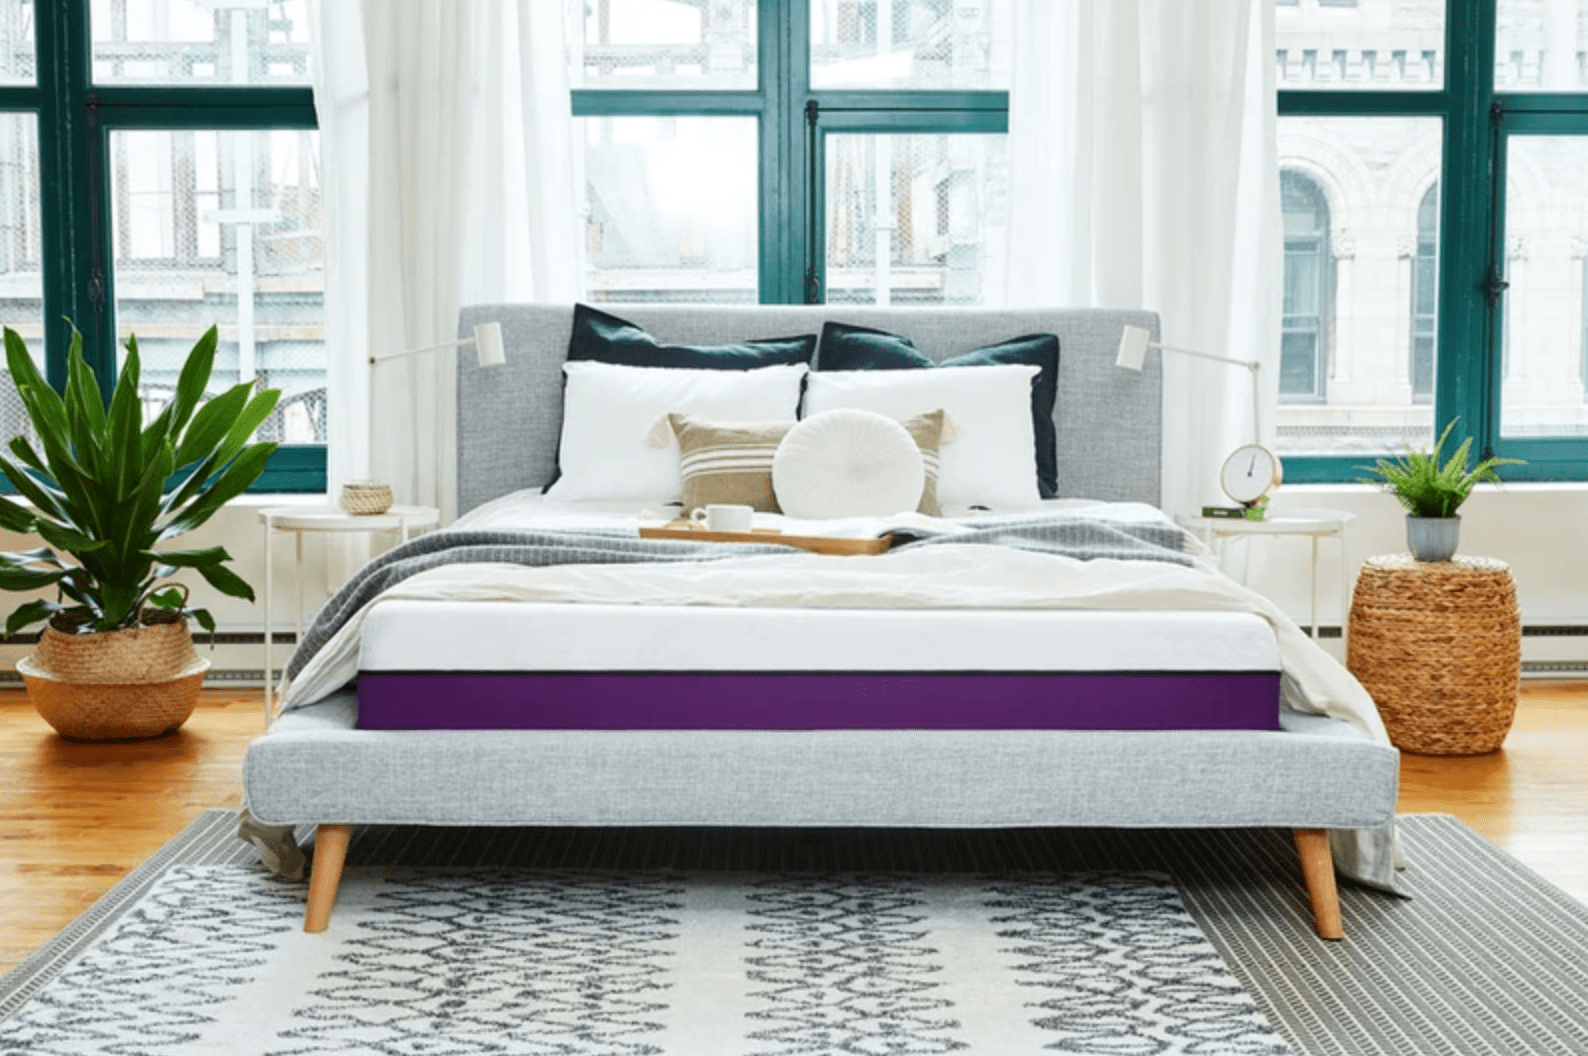 Canada Best Mattresses Polysleep Mattress